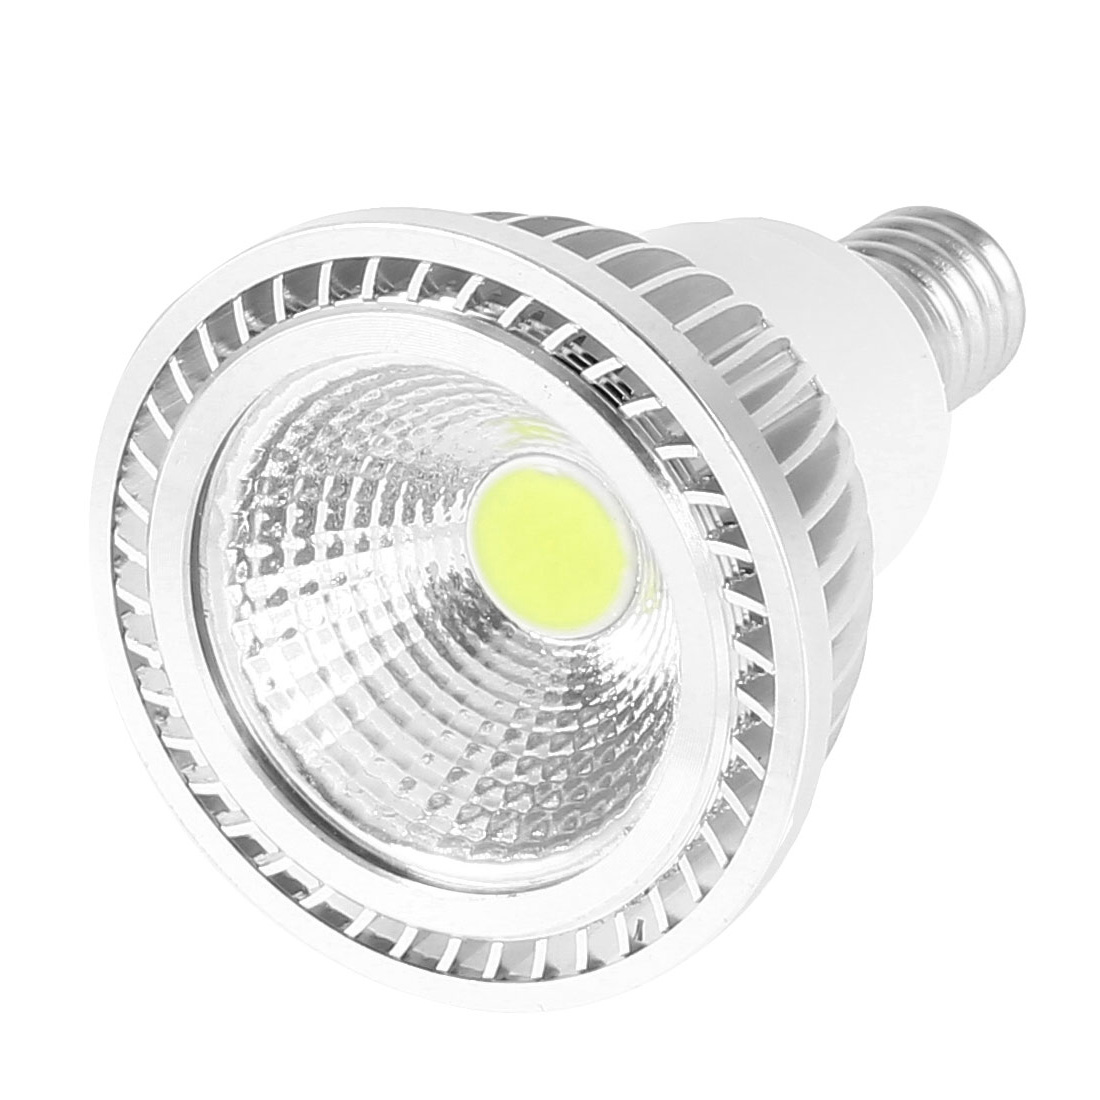 AC 85-265V E14 Base 3Watt White LED Light Energy Saving Ceiling COB Spotlight Bulb